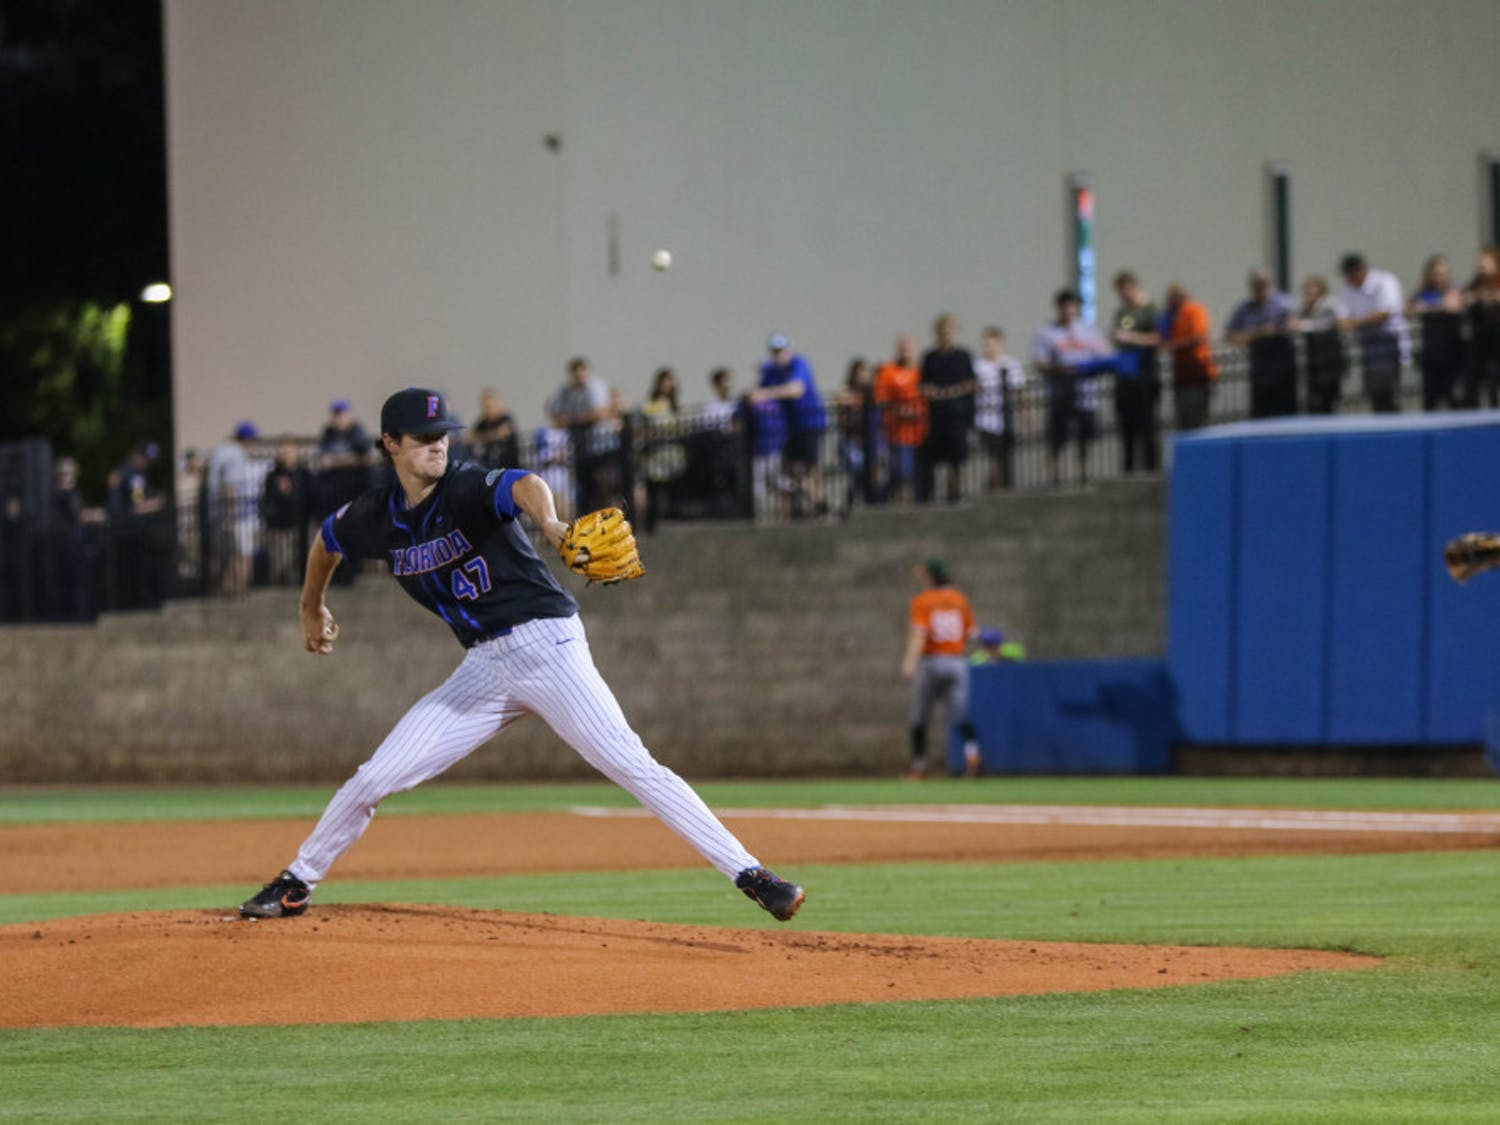 Pitcher Tommy Mace struggled as Florida dropped the opener of its series with Georgia.